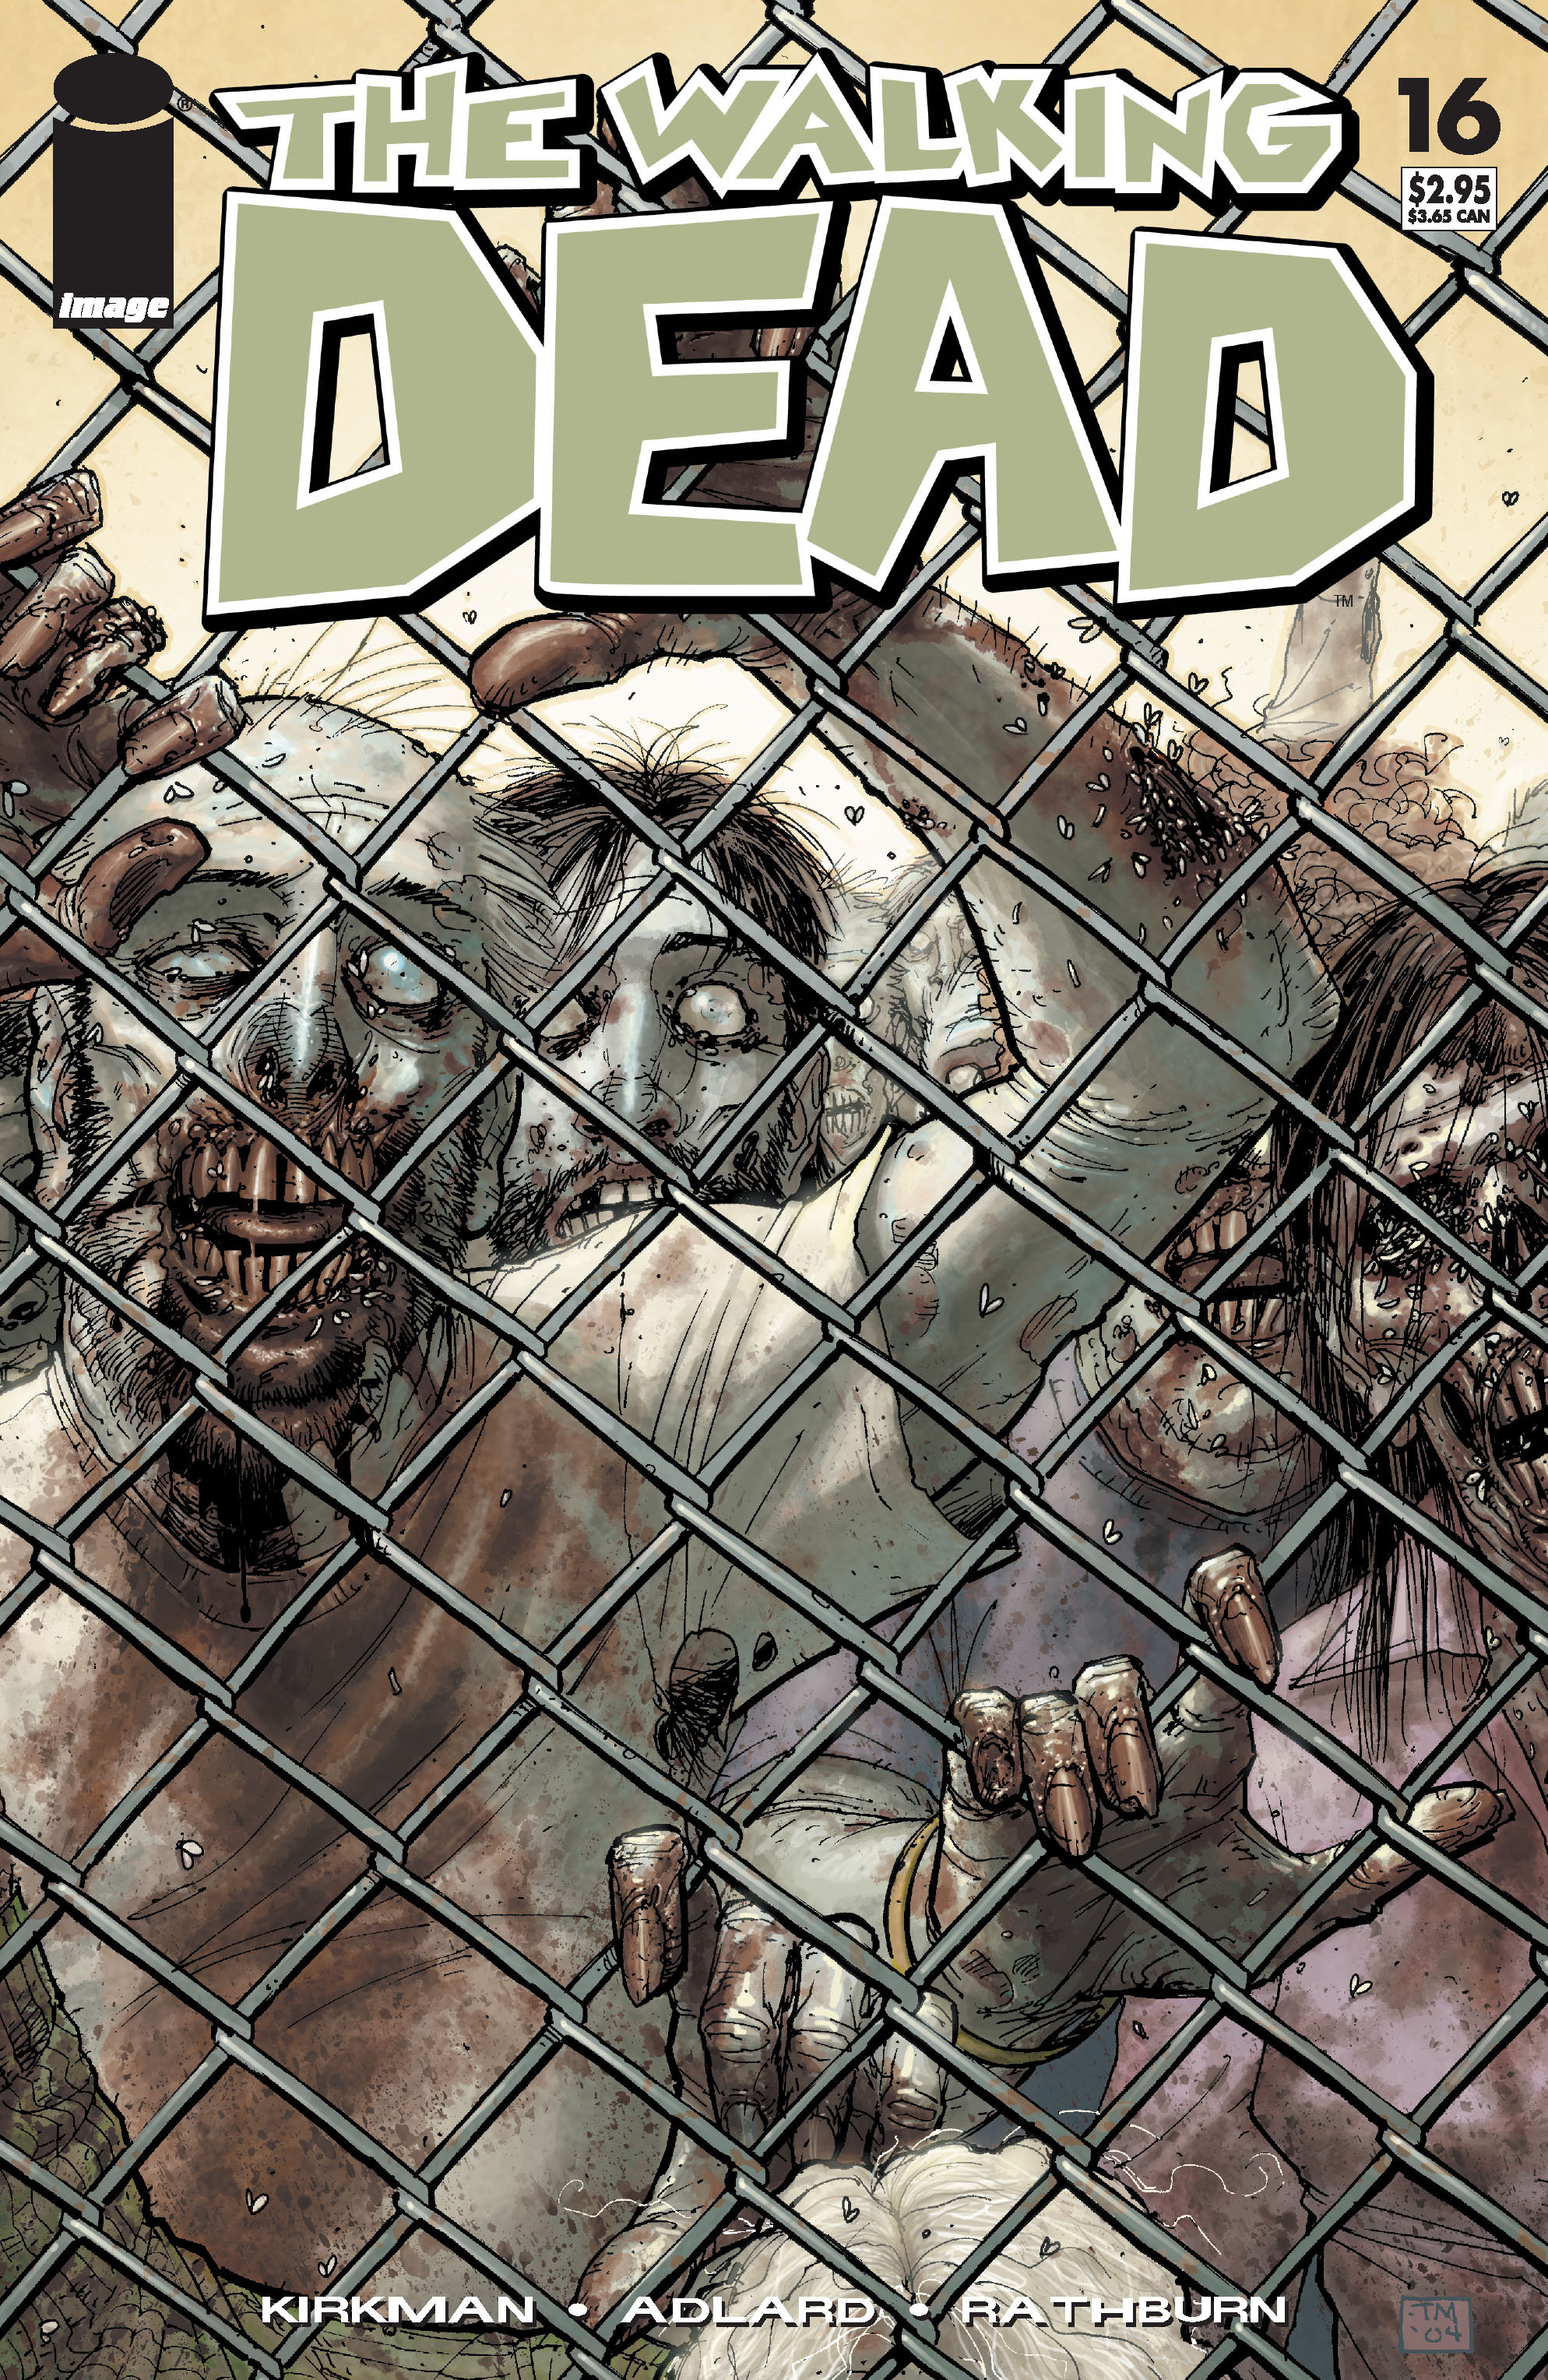 The Walking Dead 16 Page 1